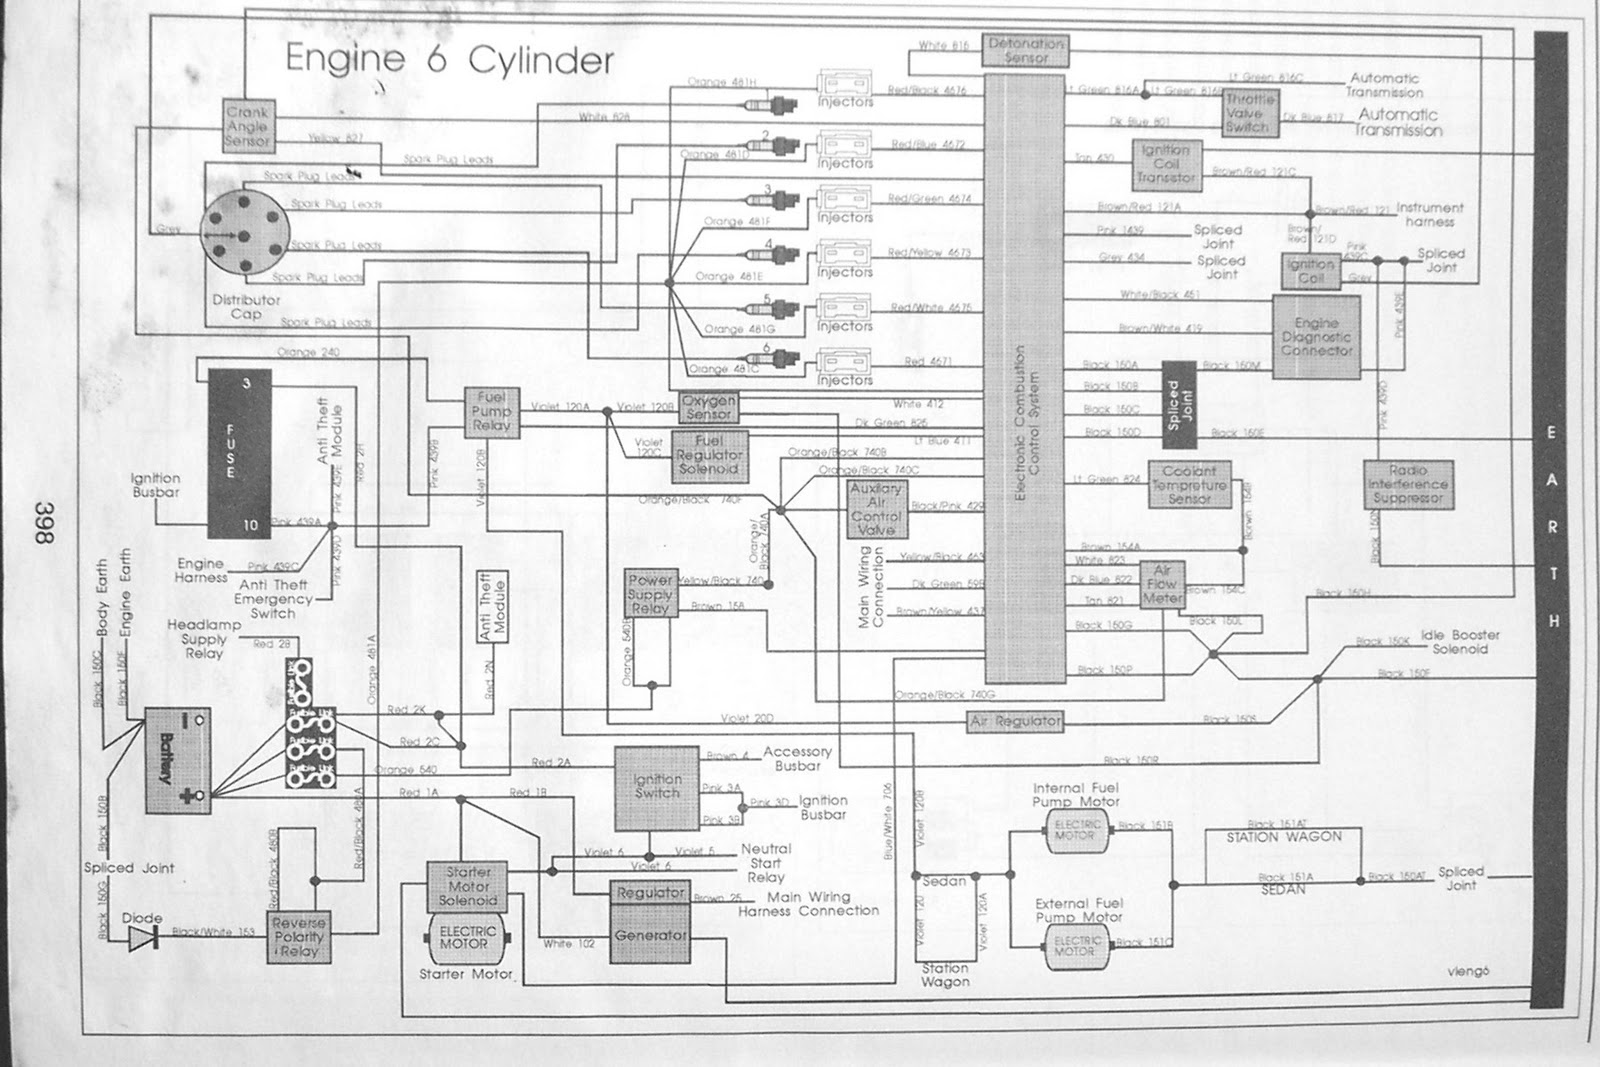 14b rb30 wiring diagrams 280zx project vl wiring diagram at gsmportal.co